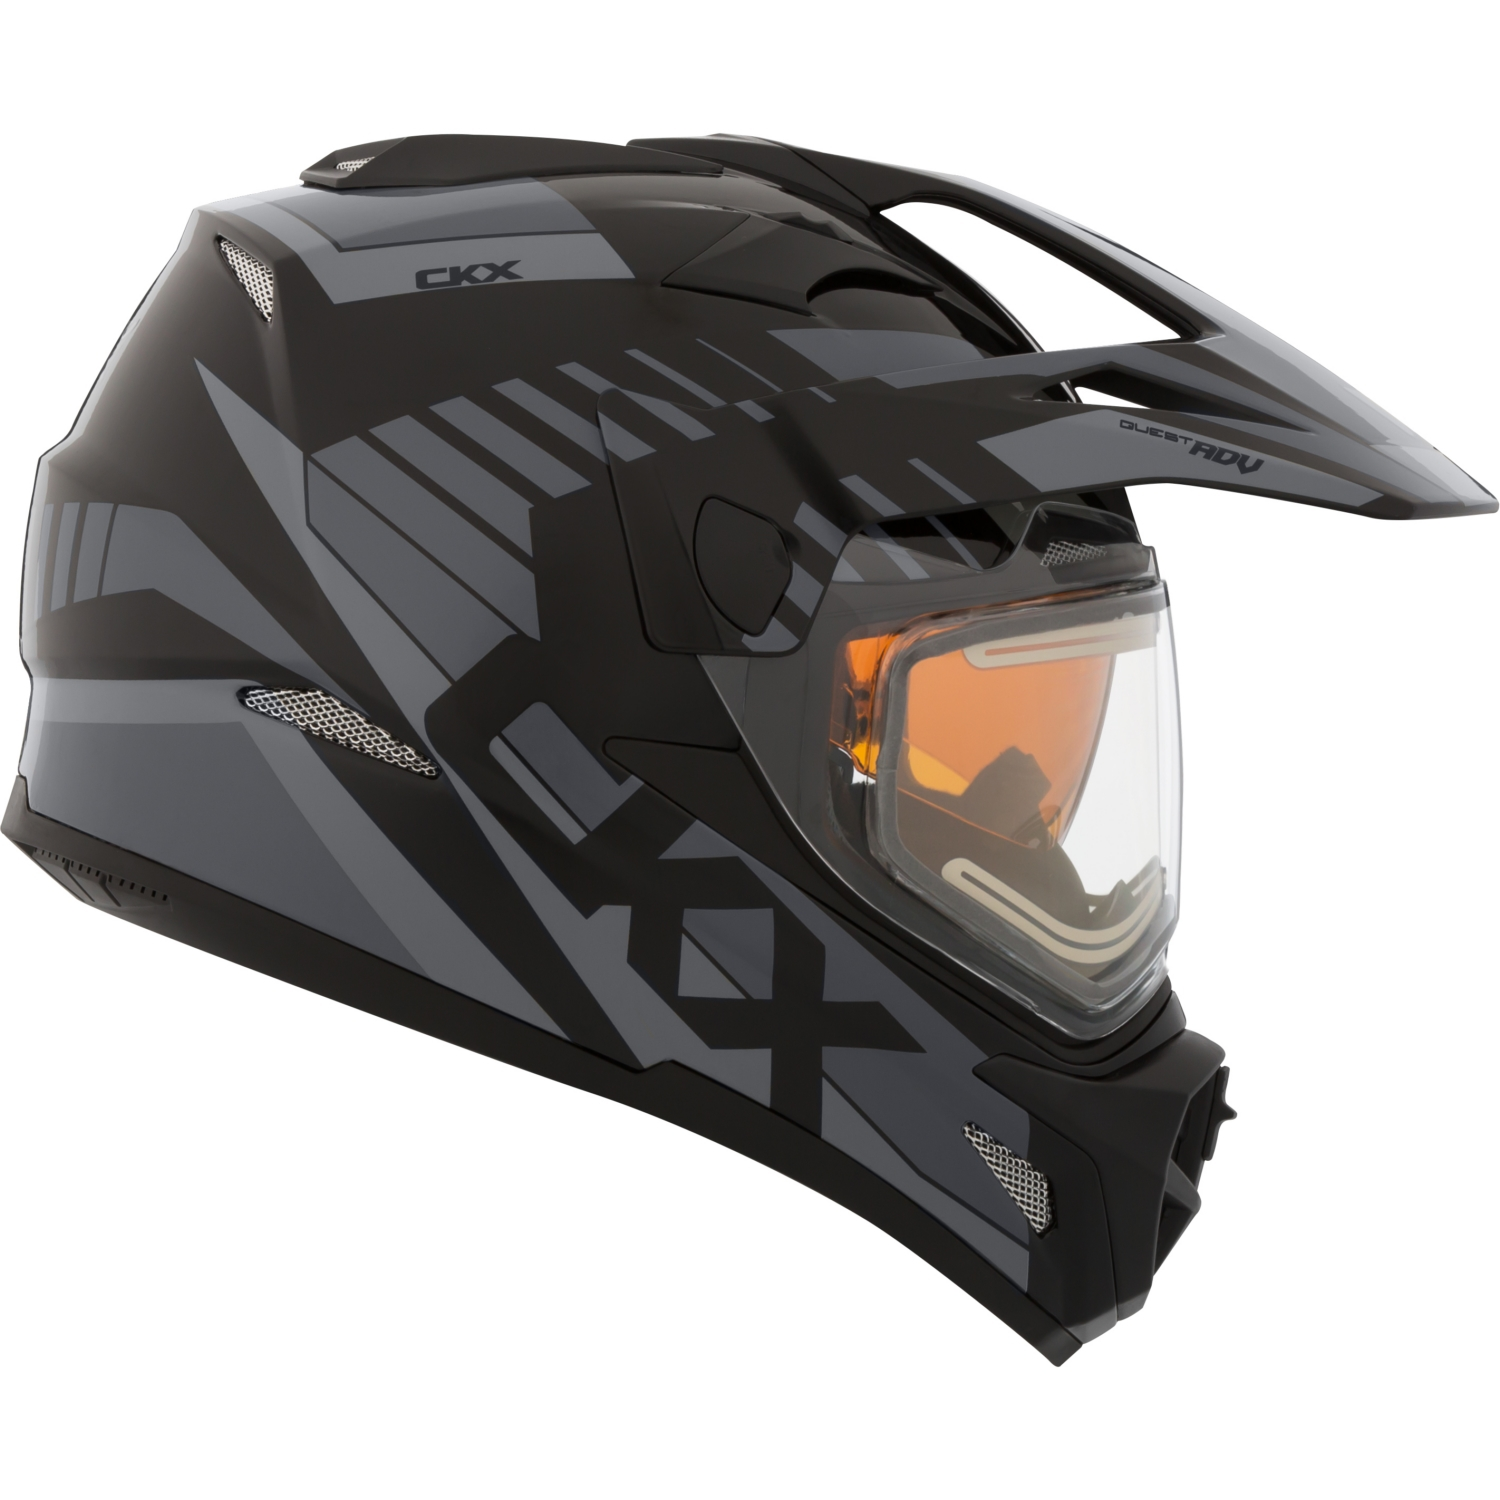 CKX Rocket Quest RSV Off-Road Helmet, Winter Electric Double Shield